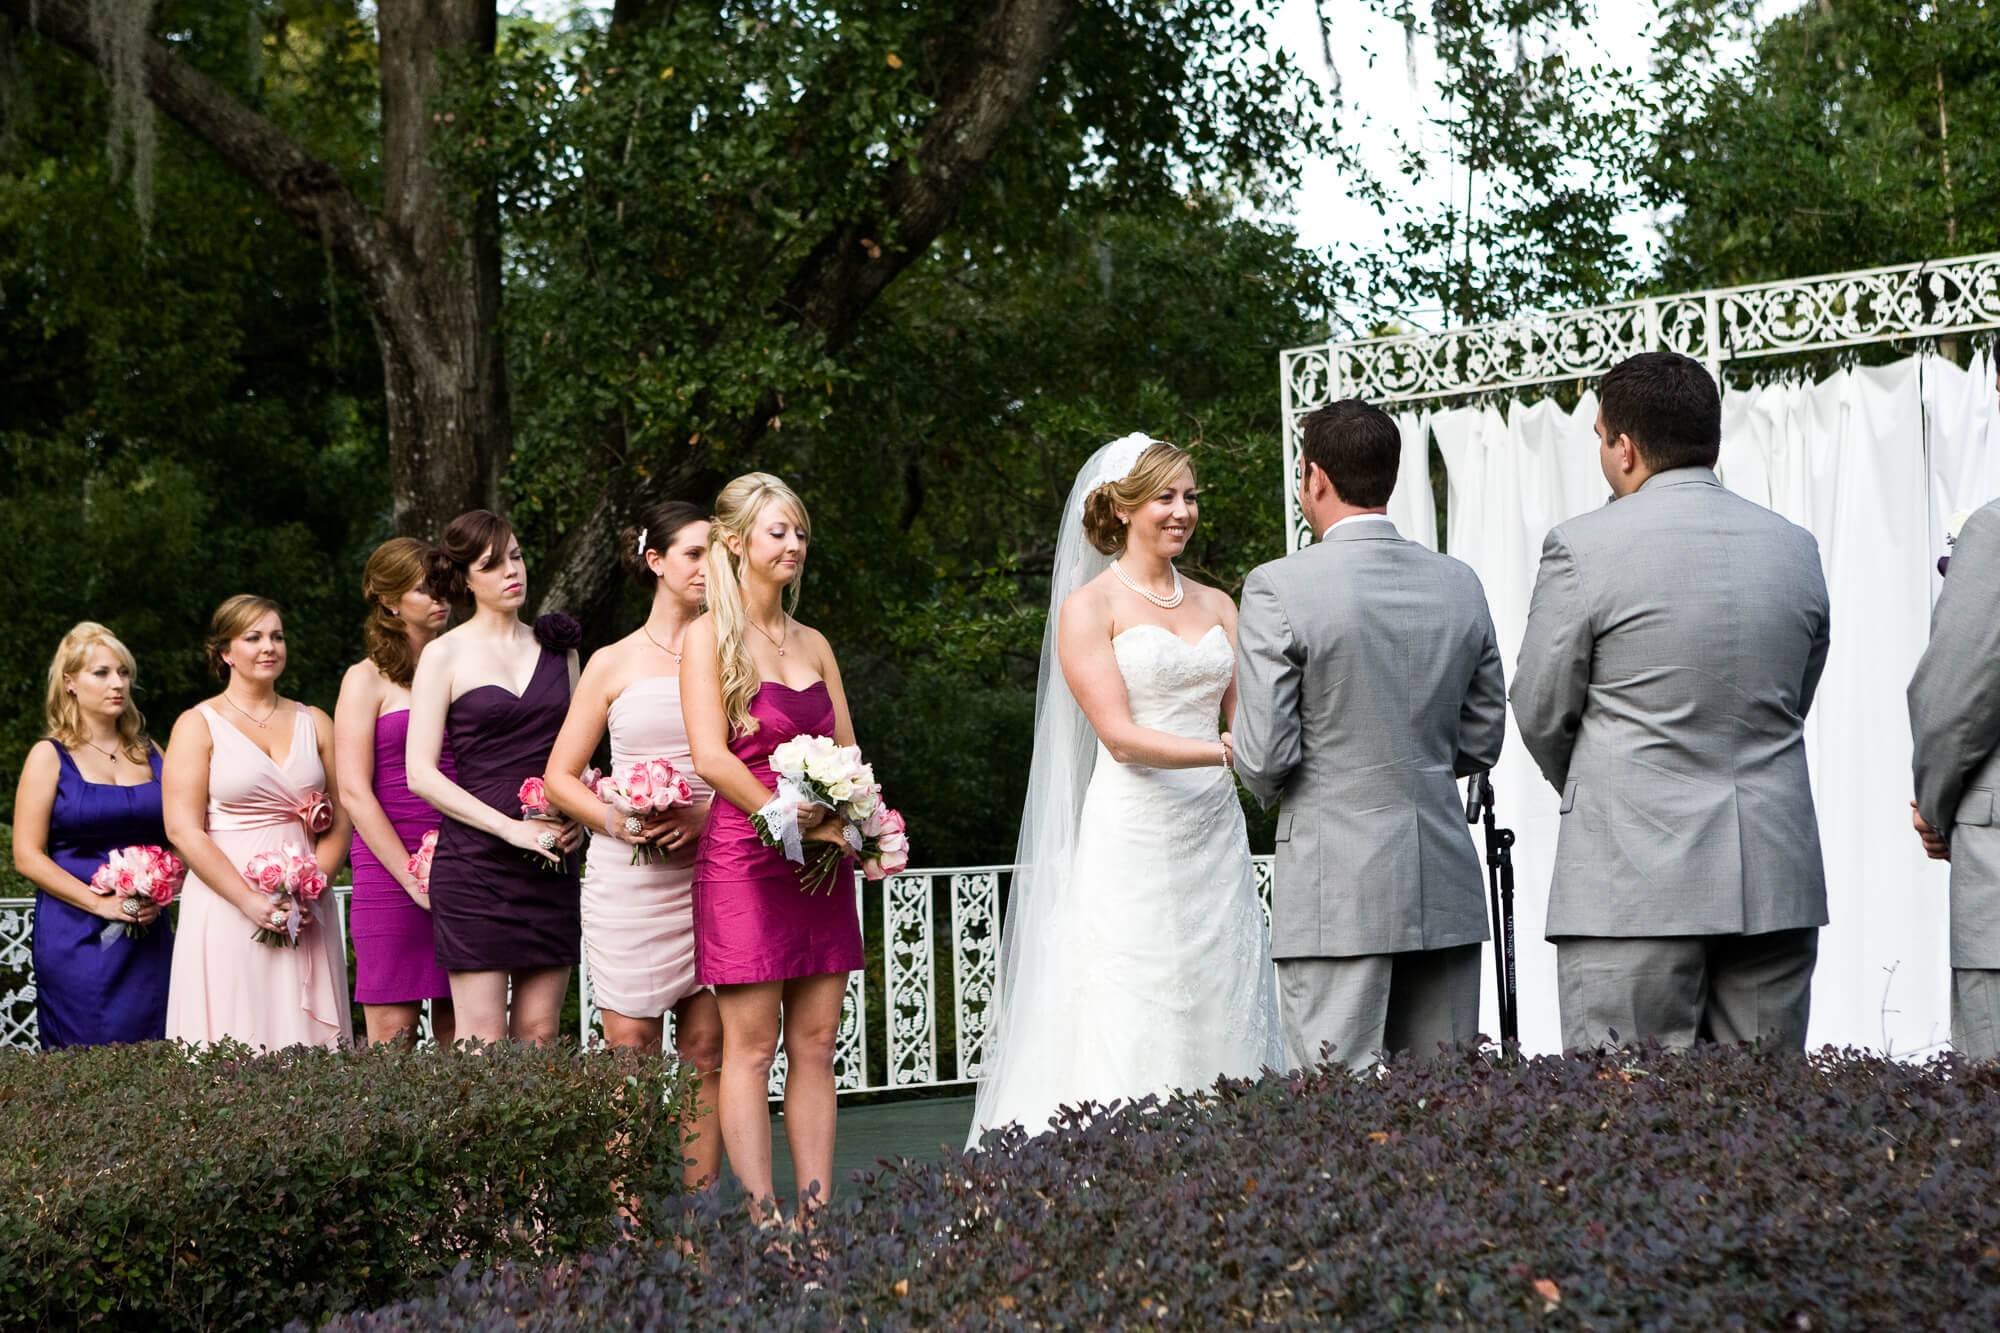 Mead Gardens, Orlando, Florida wedding